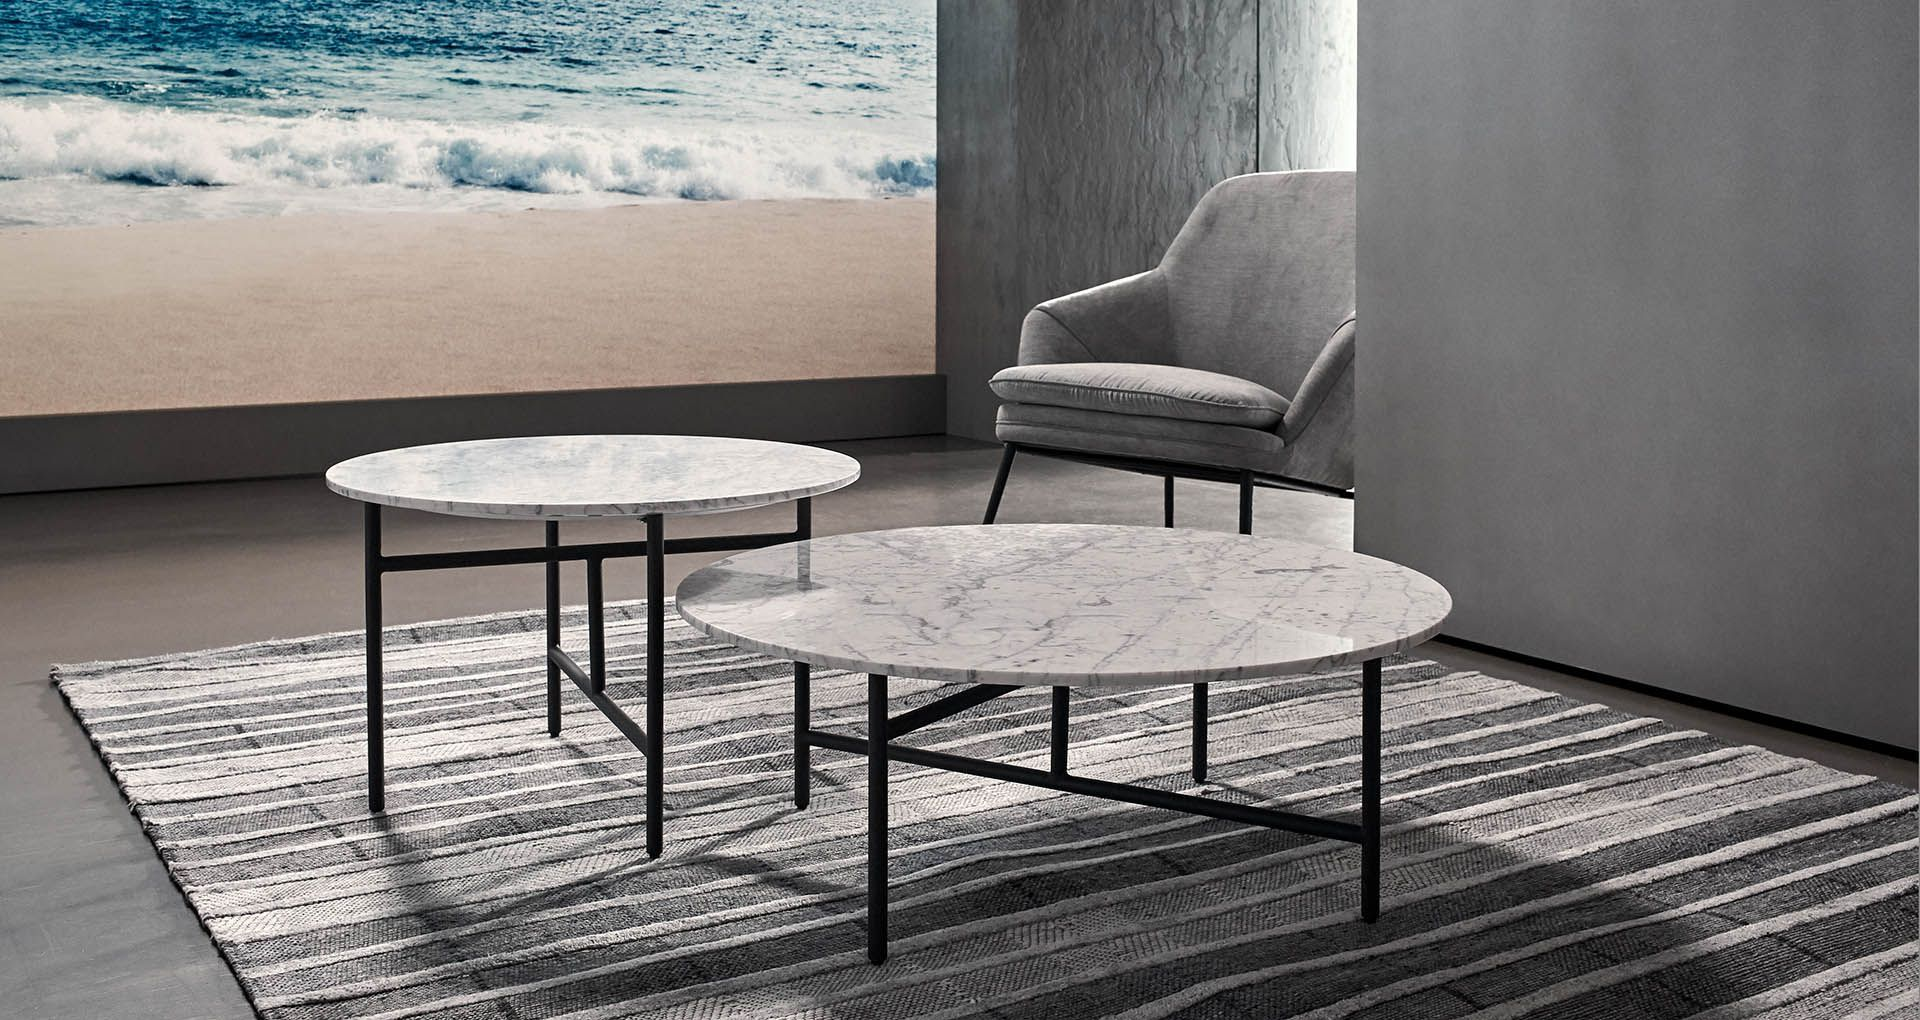 Outdoor Furniture Ringwood Nick Scali Laurie Coffee Tables Large And Small Ringwood